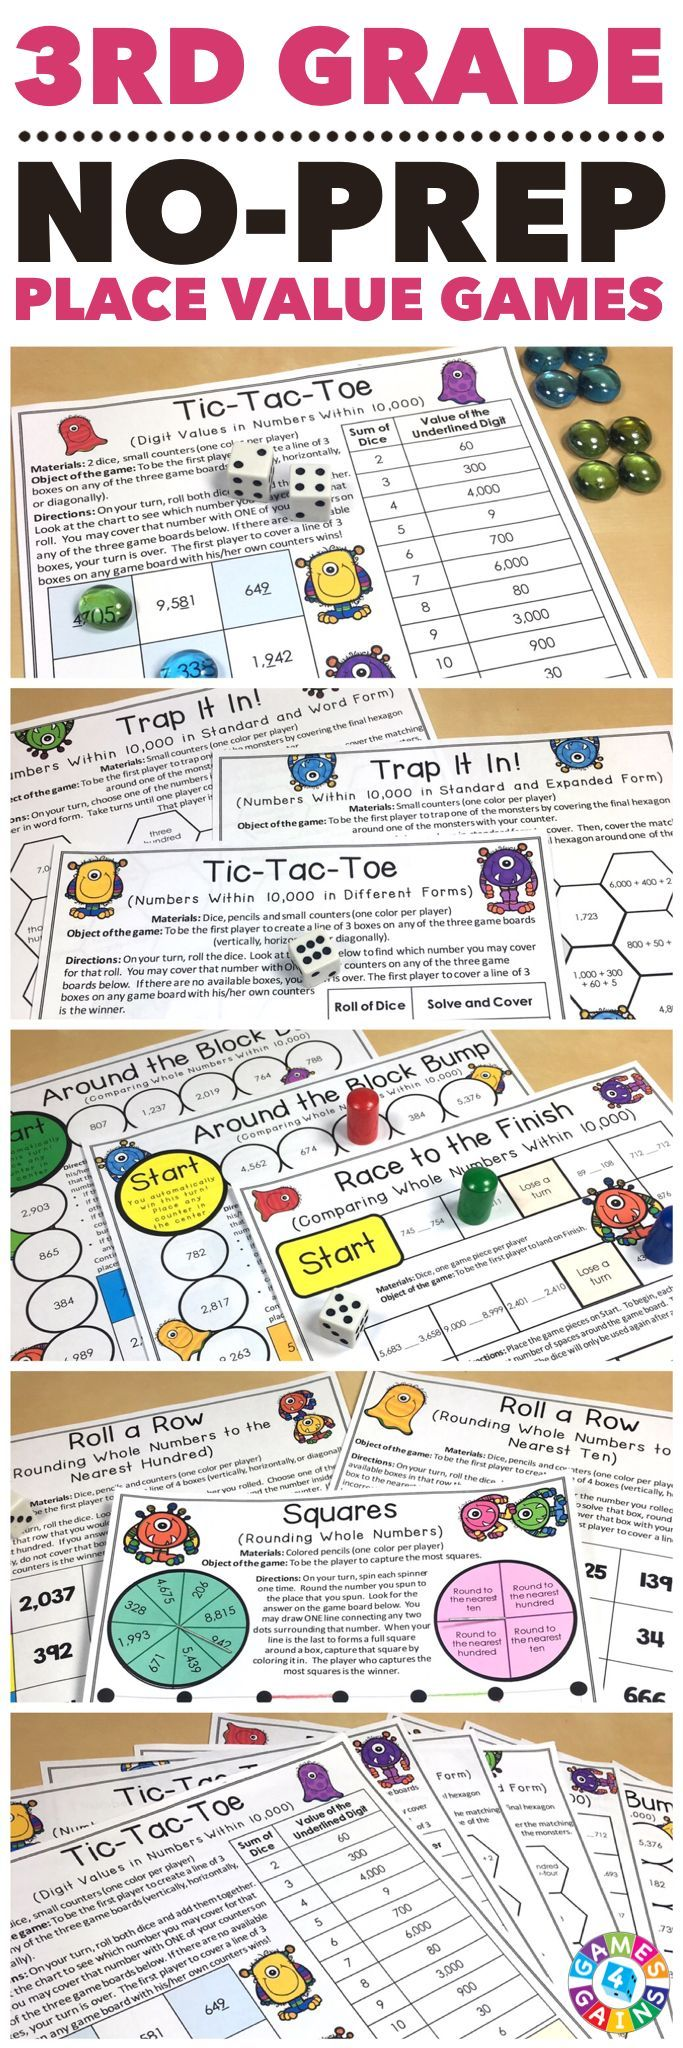 """Simple for the kids to play - they LOVED them!"" Place Value Games for 3rd Grade contains 10 fun and engaging printable board games to help students to practice reading, writing, comparing, and rounding numbers. These games are so simple to use and require very minimal prep. They are perfect to use in math centers or as extension activities when students complete their work!"